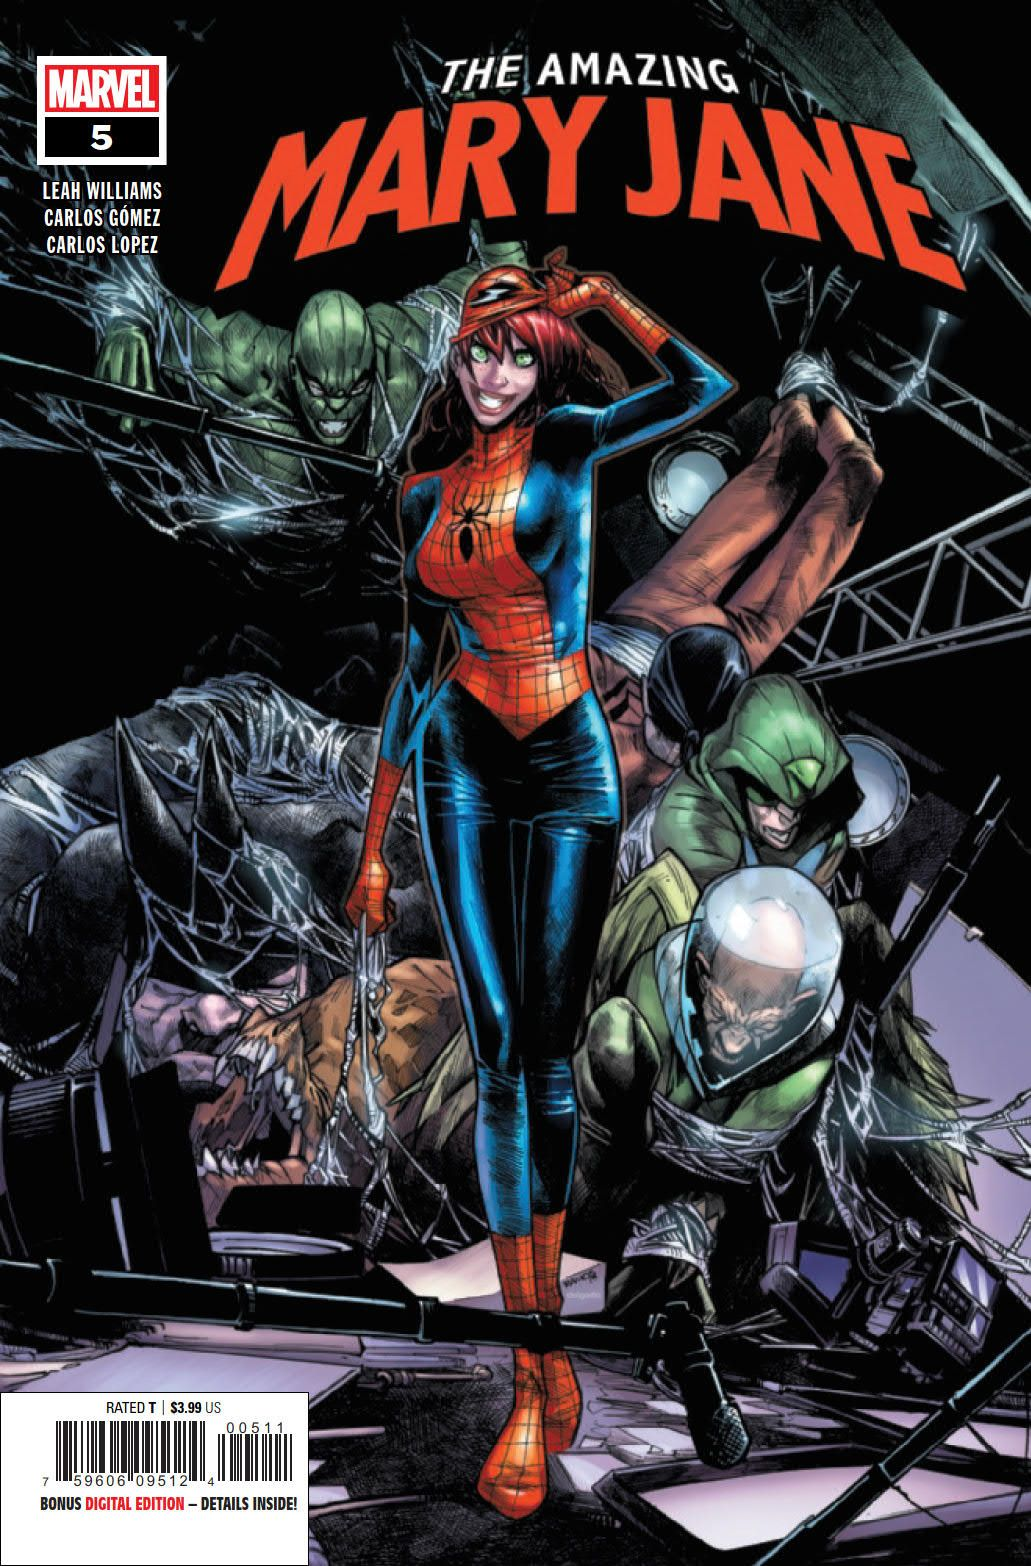 PREVIEW: The Amazing Mary Jane #5 | CBR